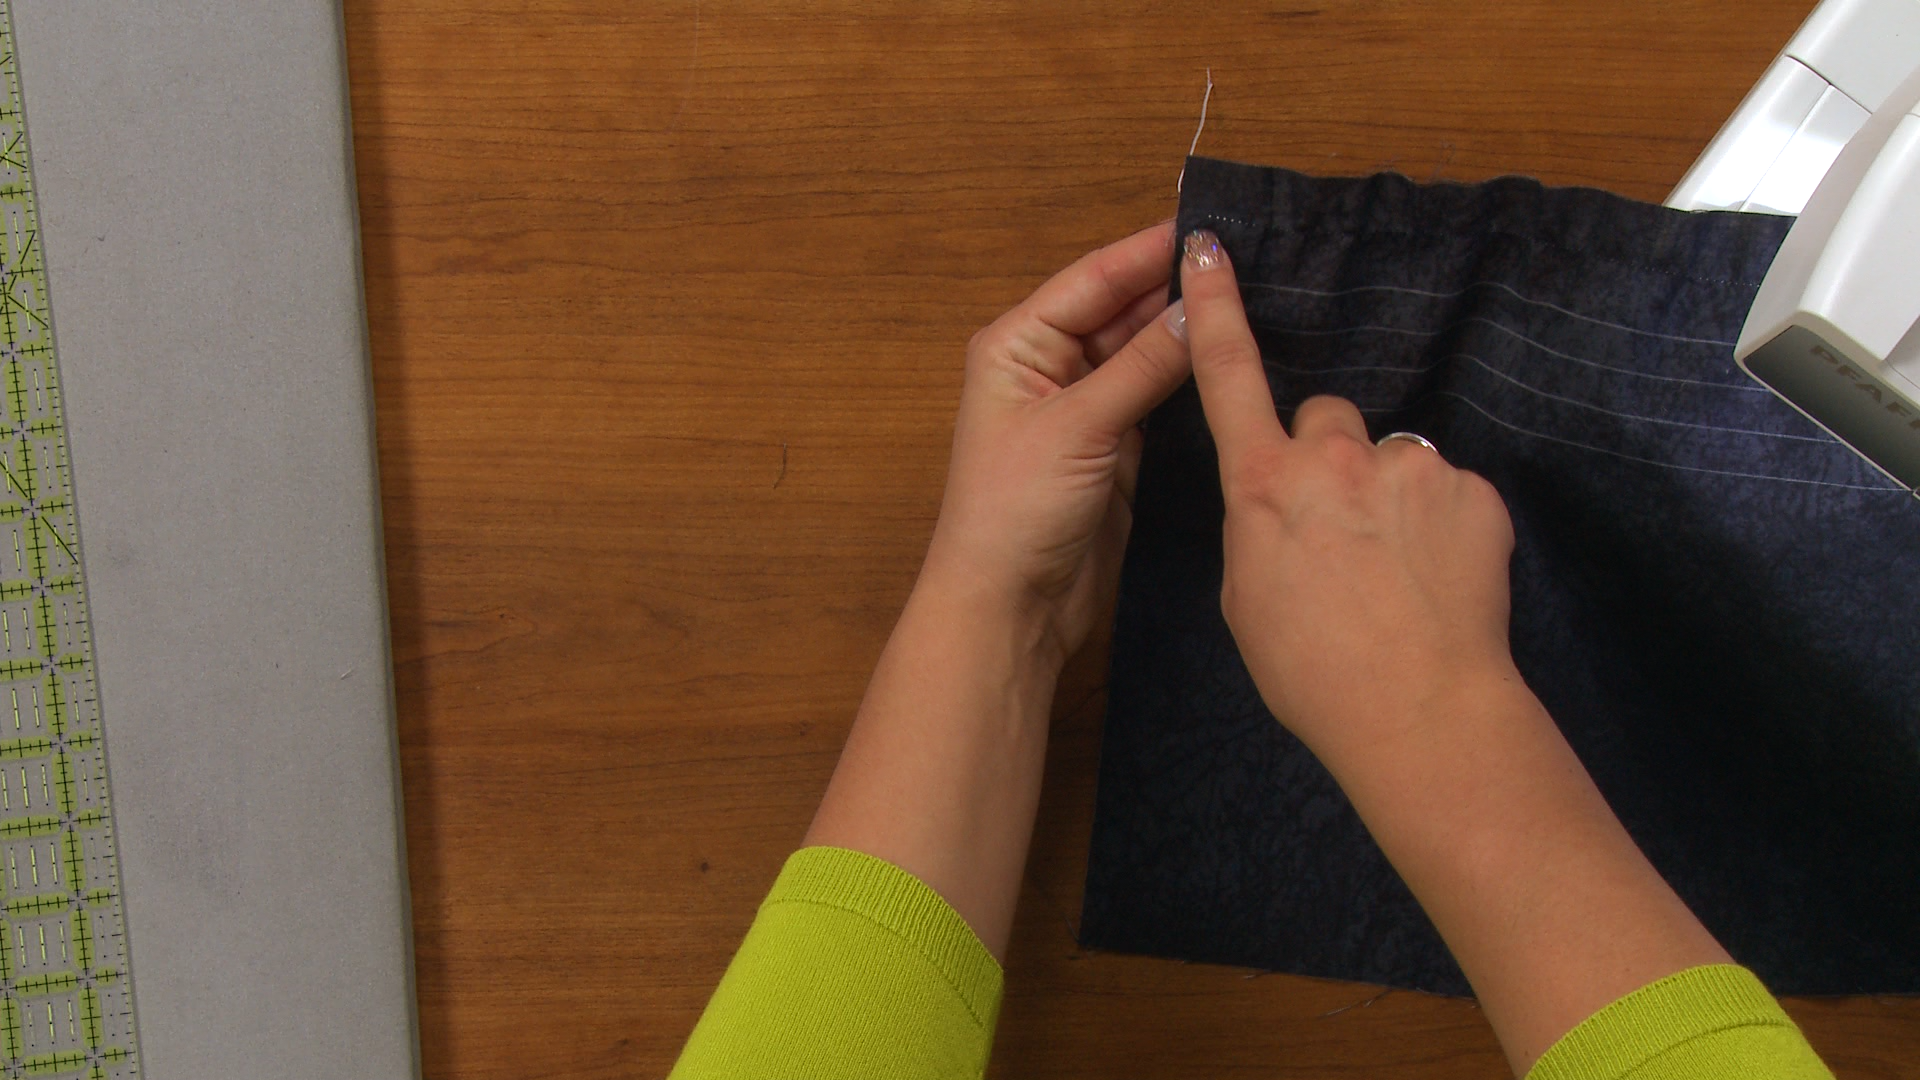 06 Shirring - Sewing With Texture